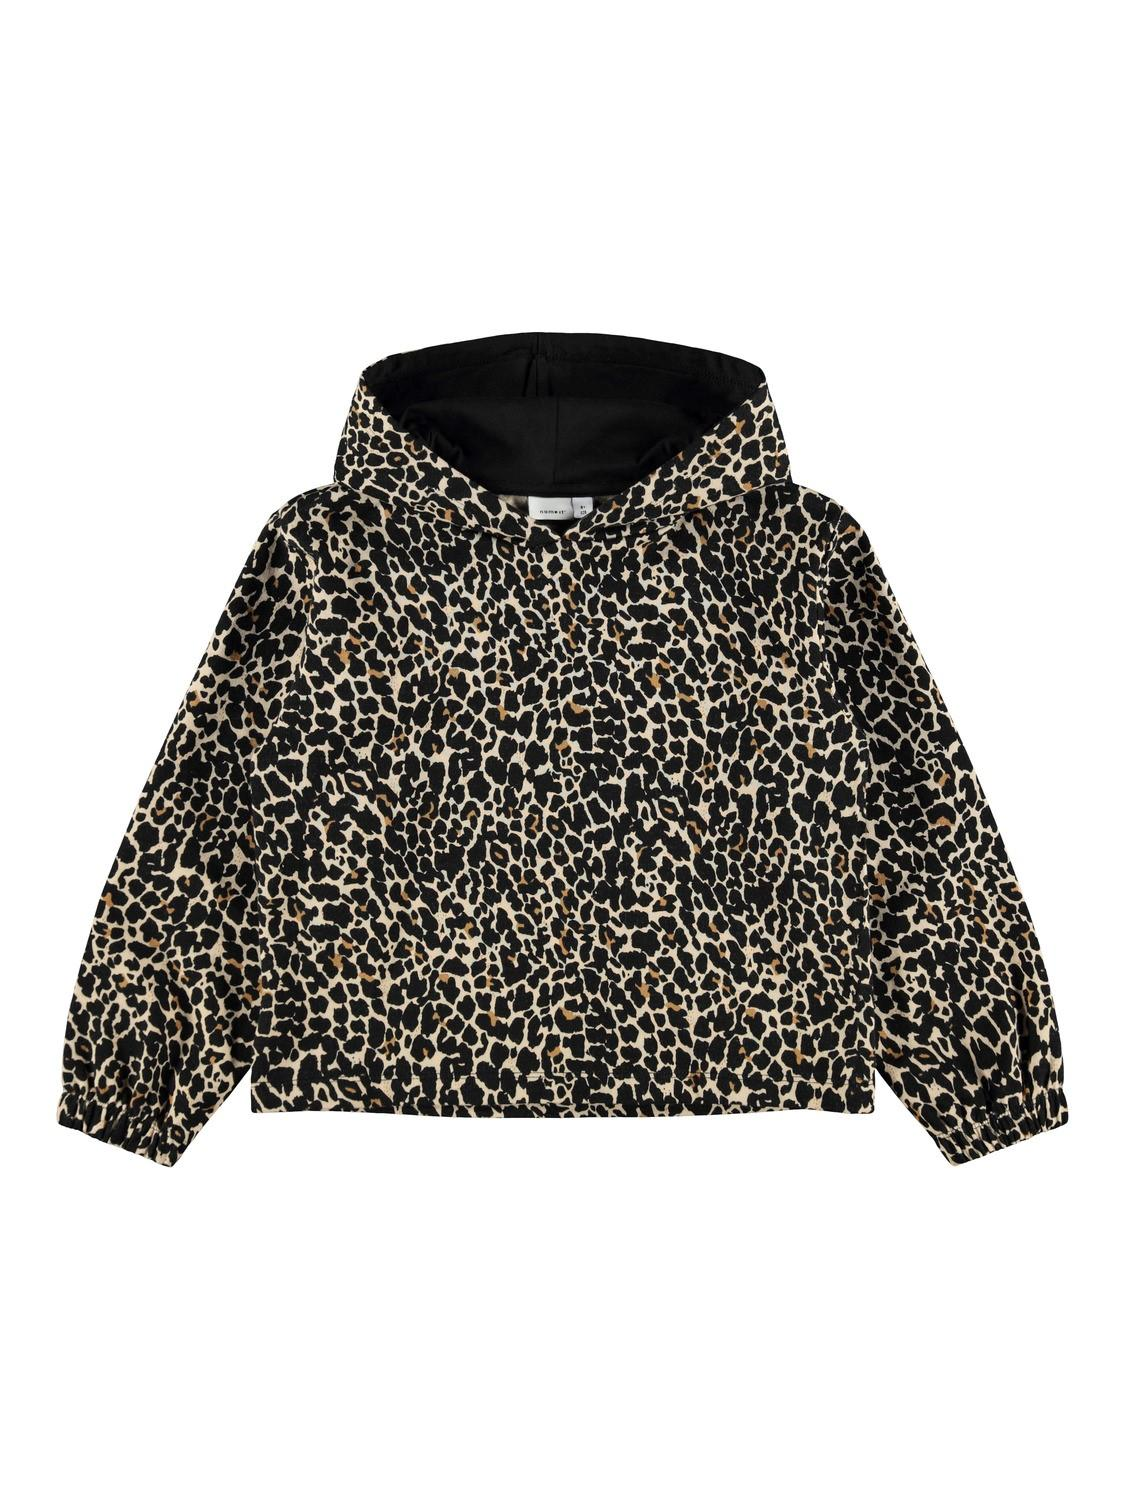 NAME IT LEOPARD HOODTRÖJA